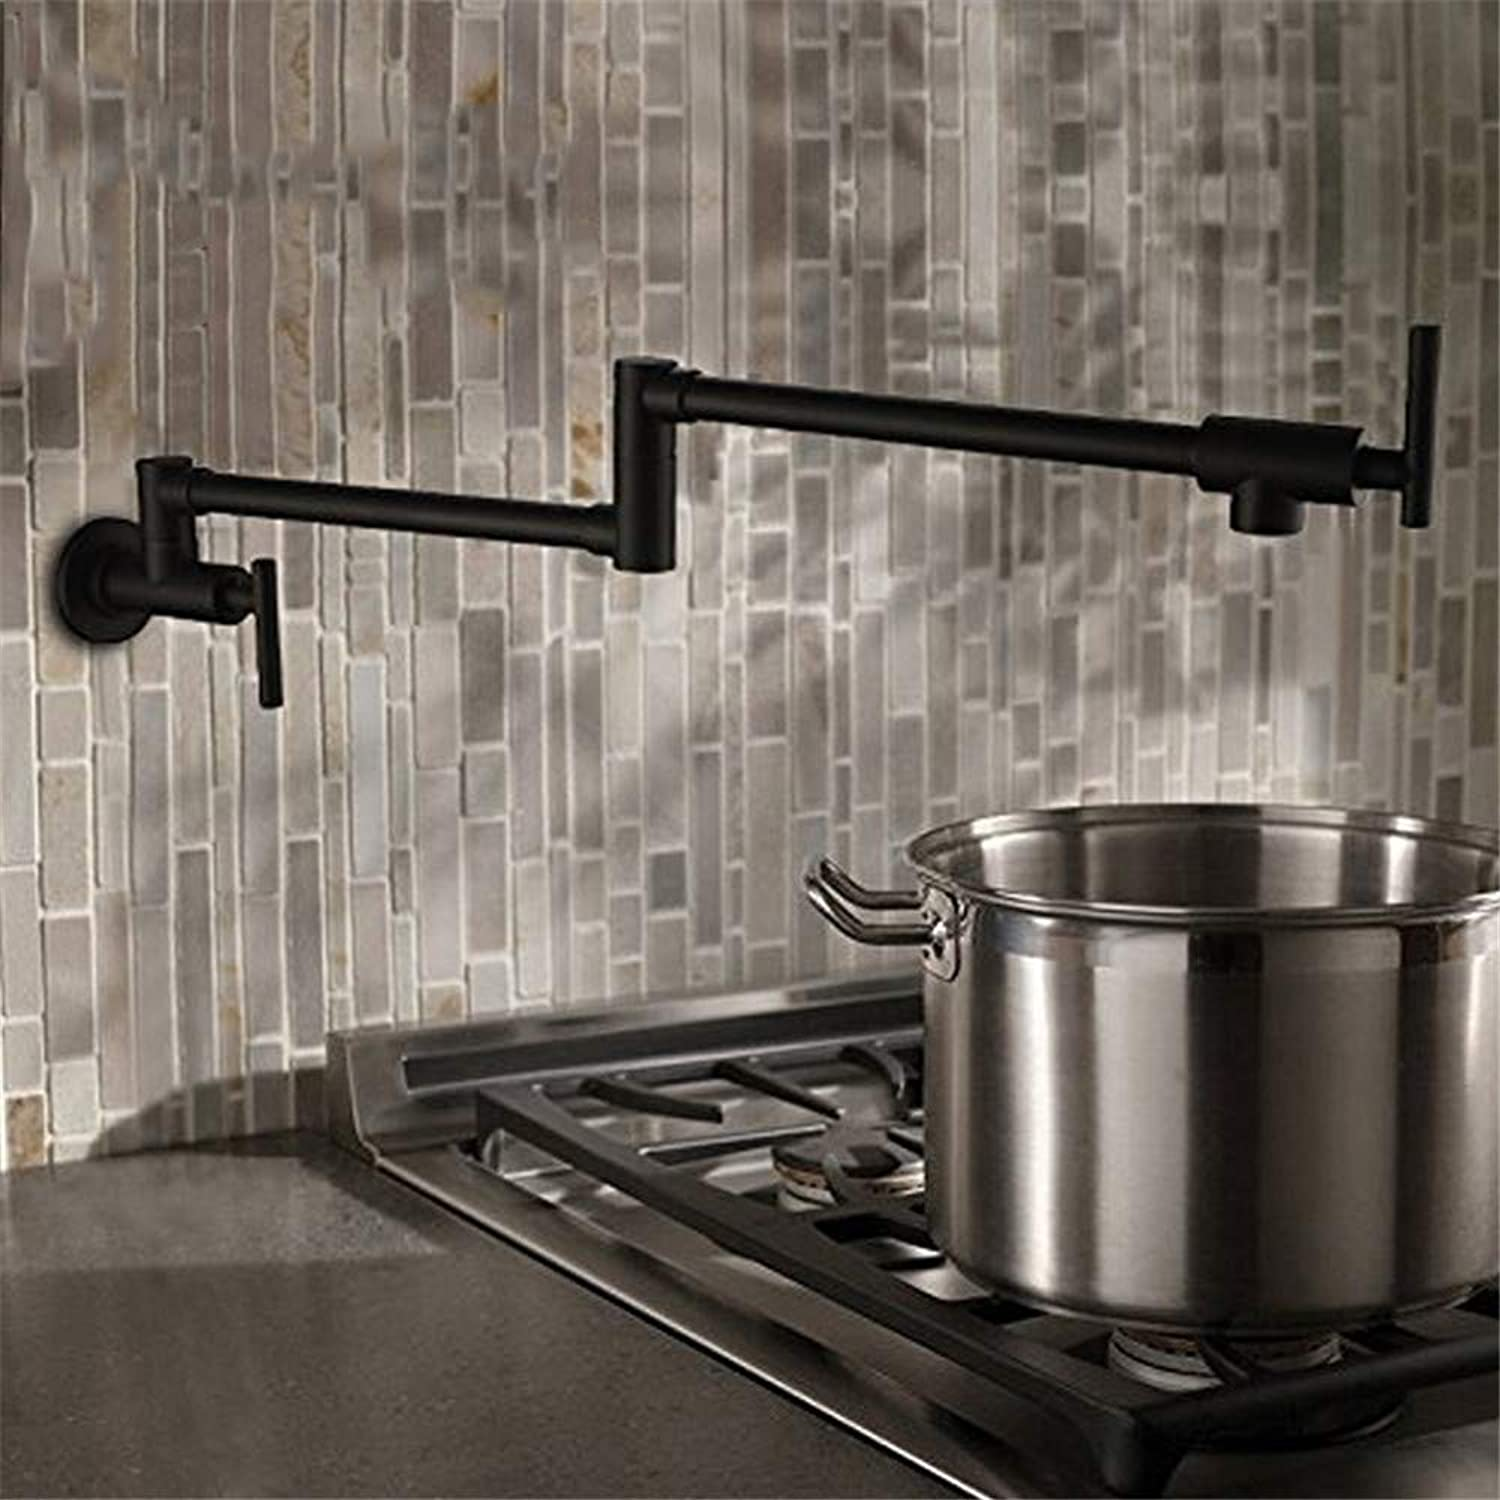 Decorry Brass Black Kitchen Faucets Folding Pot Filler 2 Handles Wall Mounted Single Cold Cook Tap